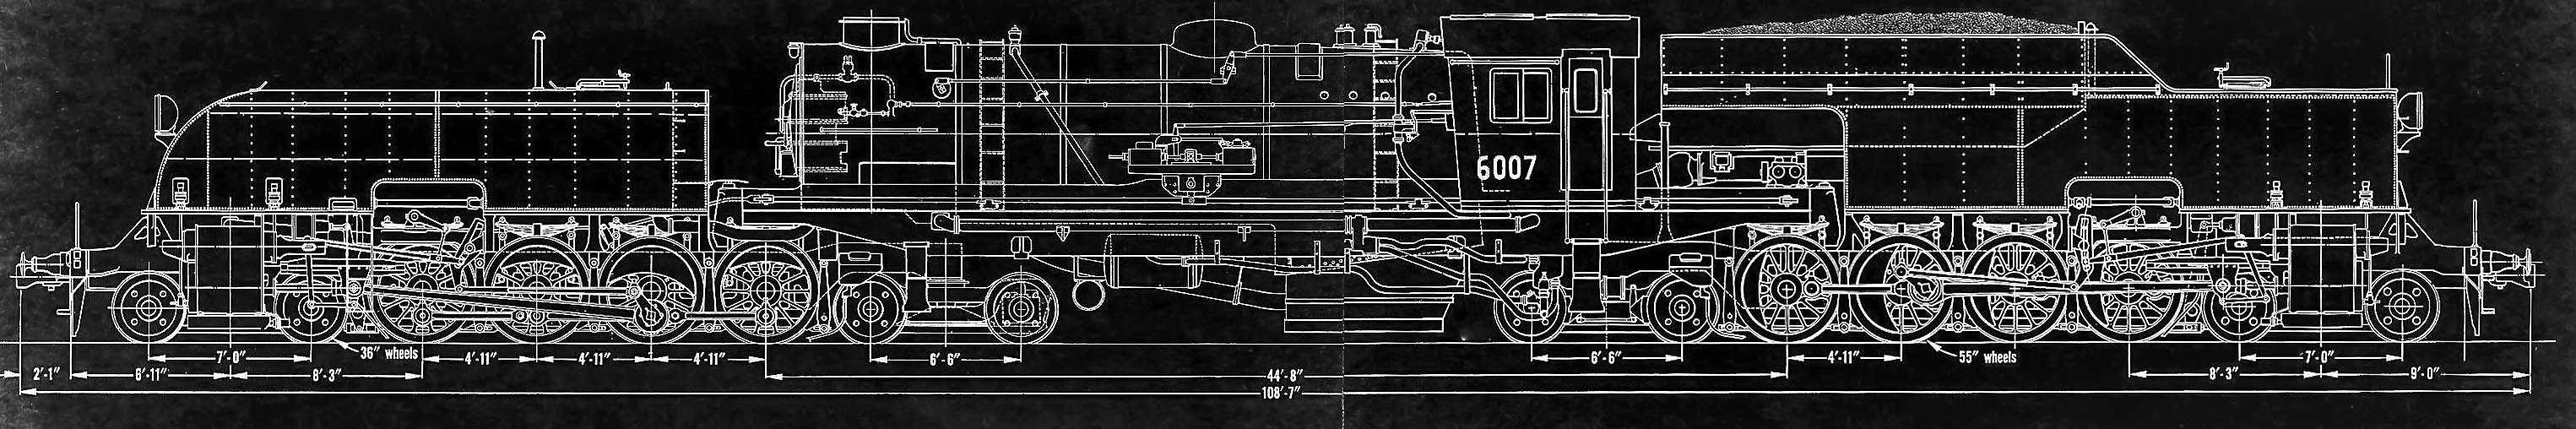 NSWGR_AD60_Class_General_Arrangement